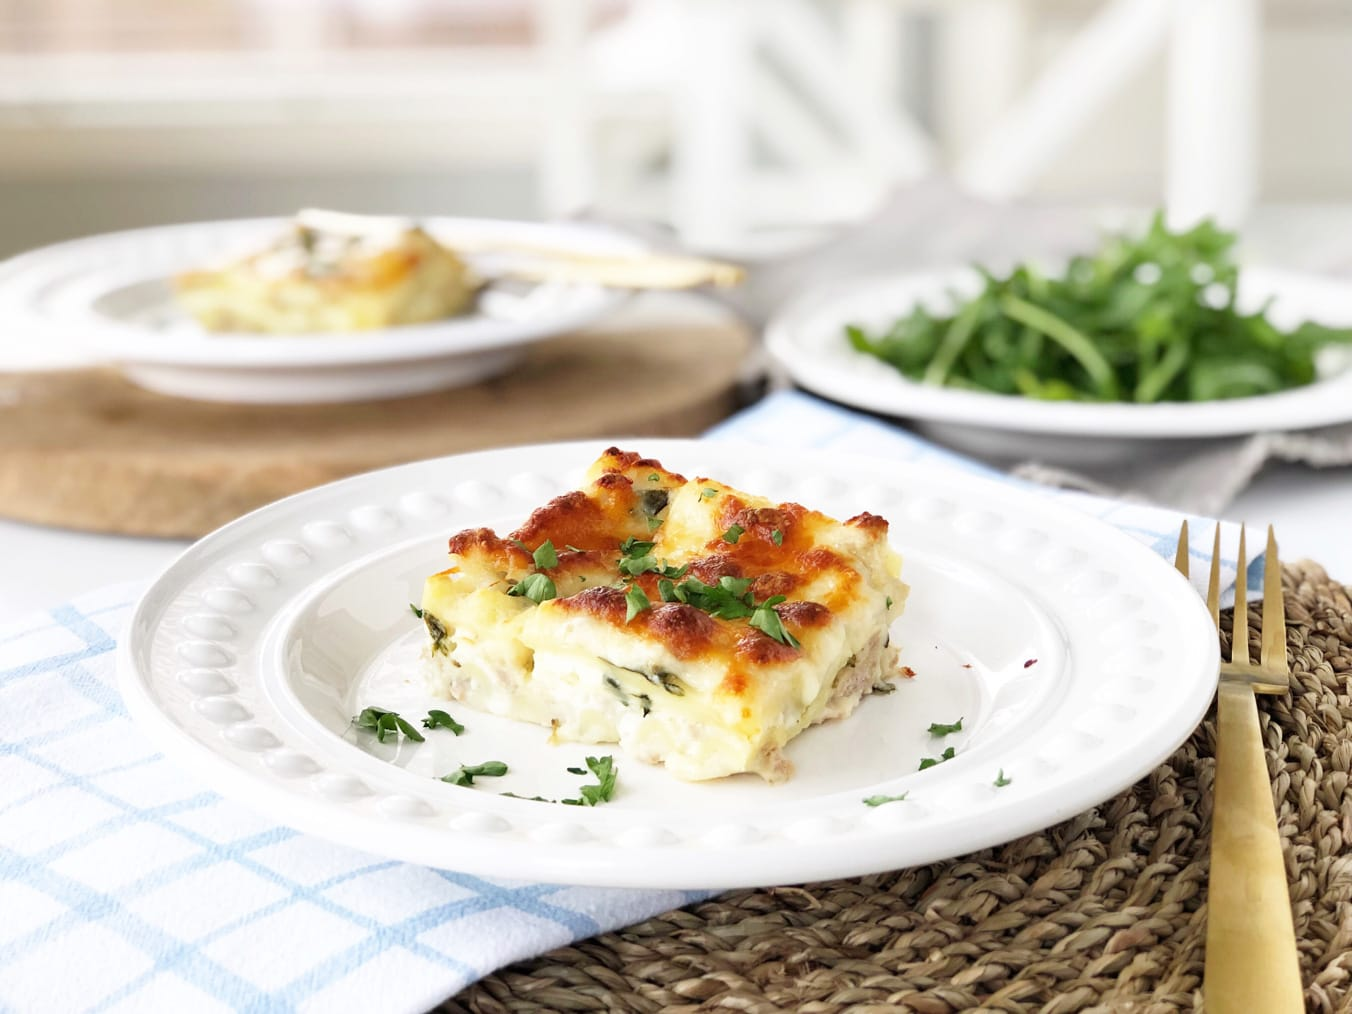 Easter Dinner Menu Idea: Creamy White Turkey Lasagna